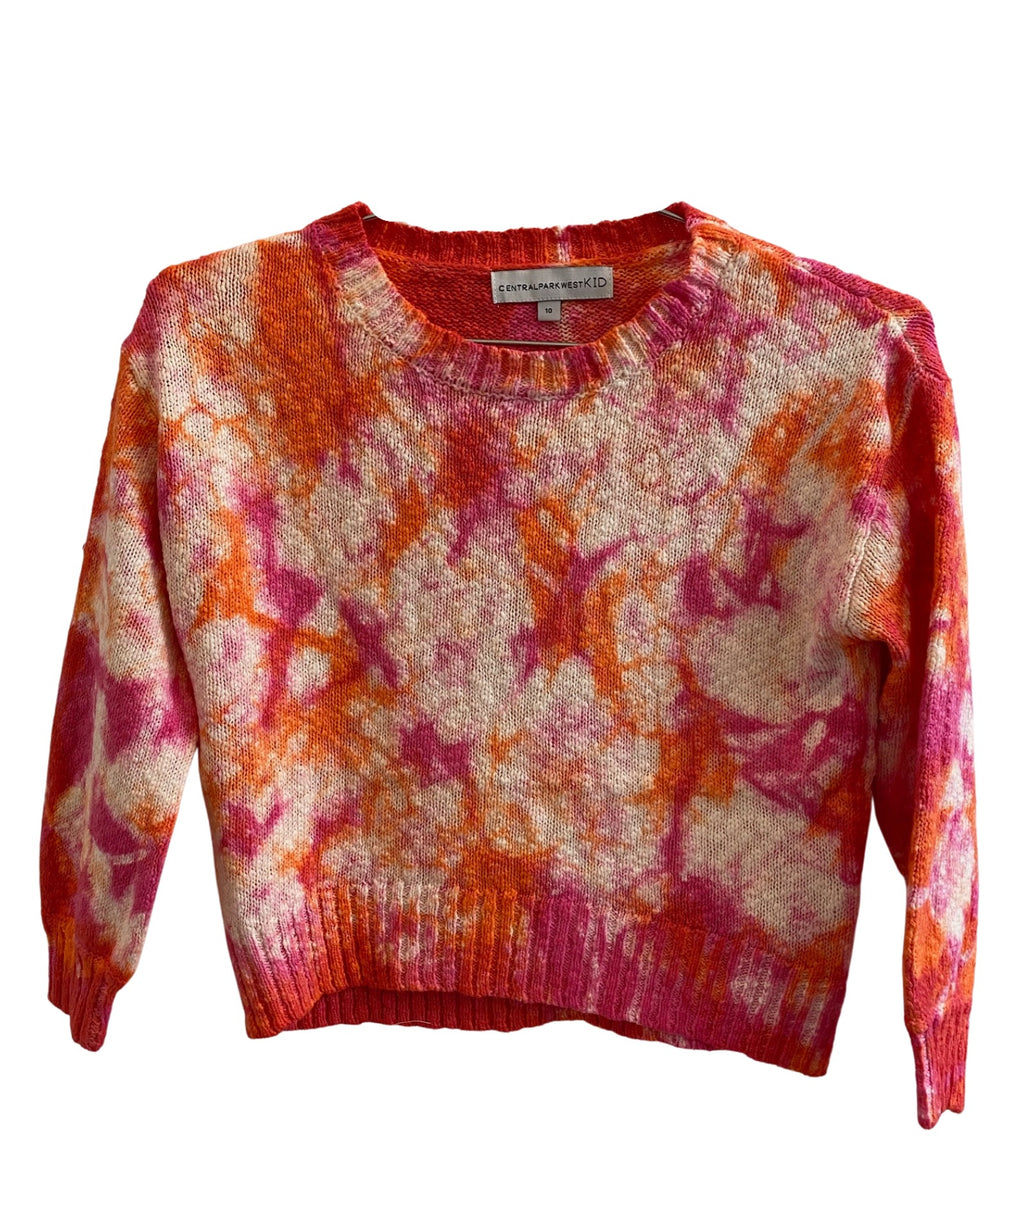 Central Park West Girls Pink Tie-Dye Sweater